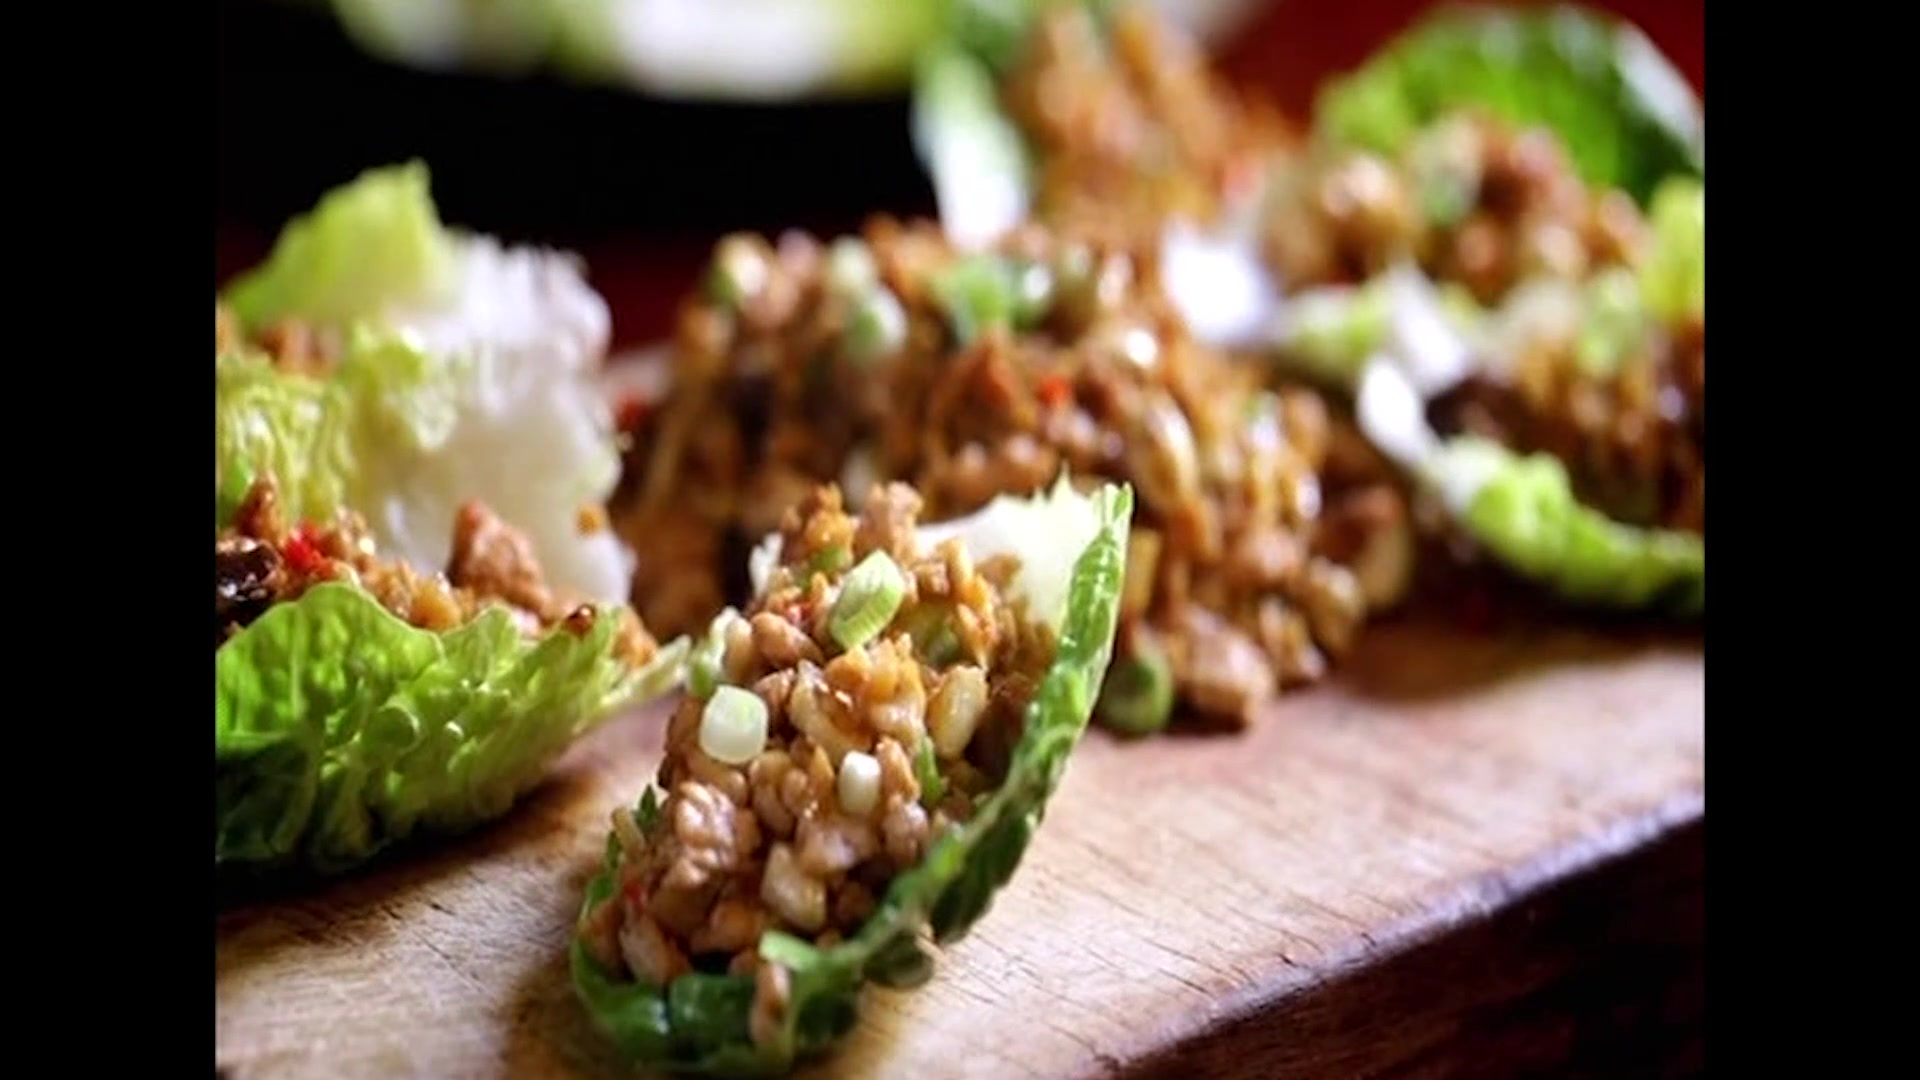 How to Make Fragrant Chinese Chicken Wrapped in Lettuce Leaves By Gok Wan